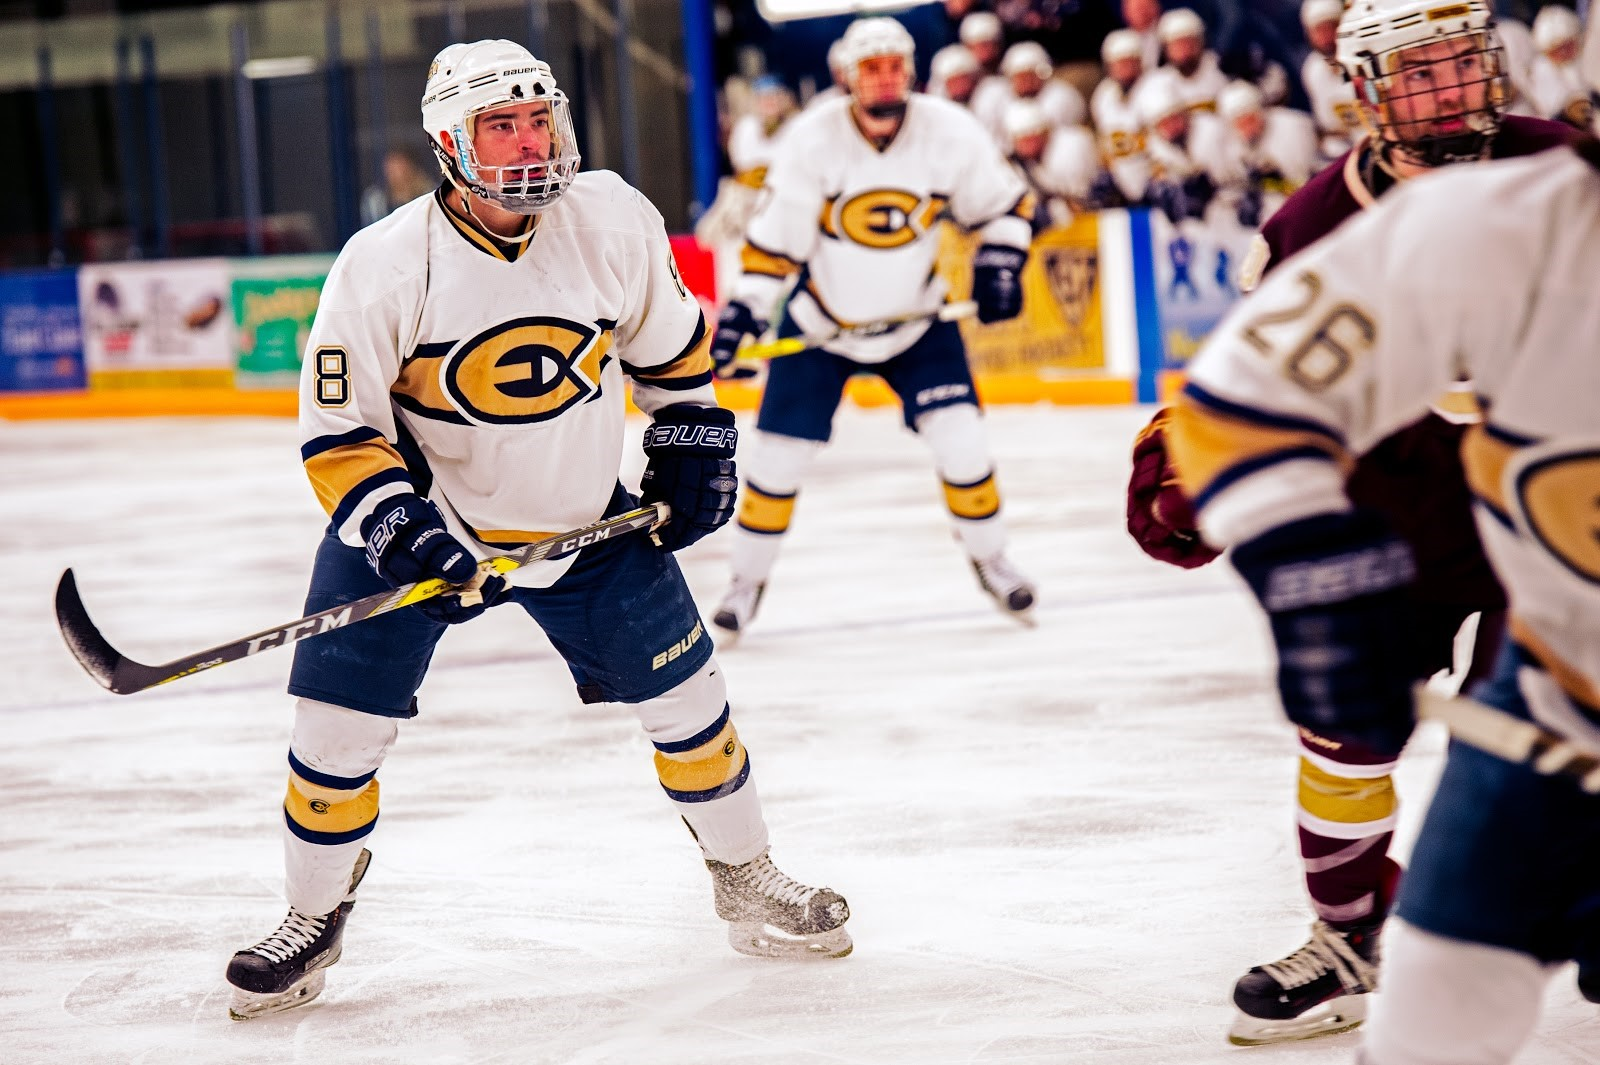 Junior Blugold hockey player, Colton Wolter, stands ready to assist his fellow teammates score a goal.